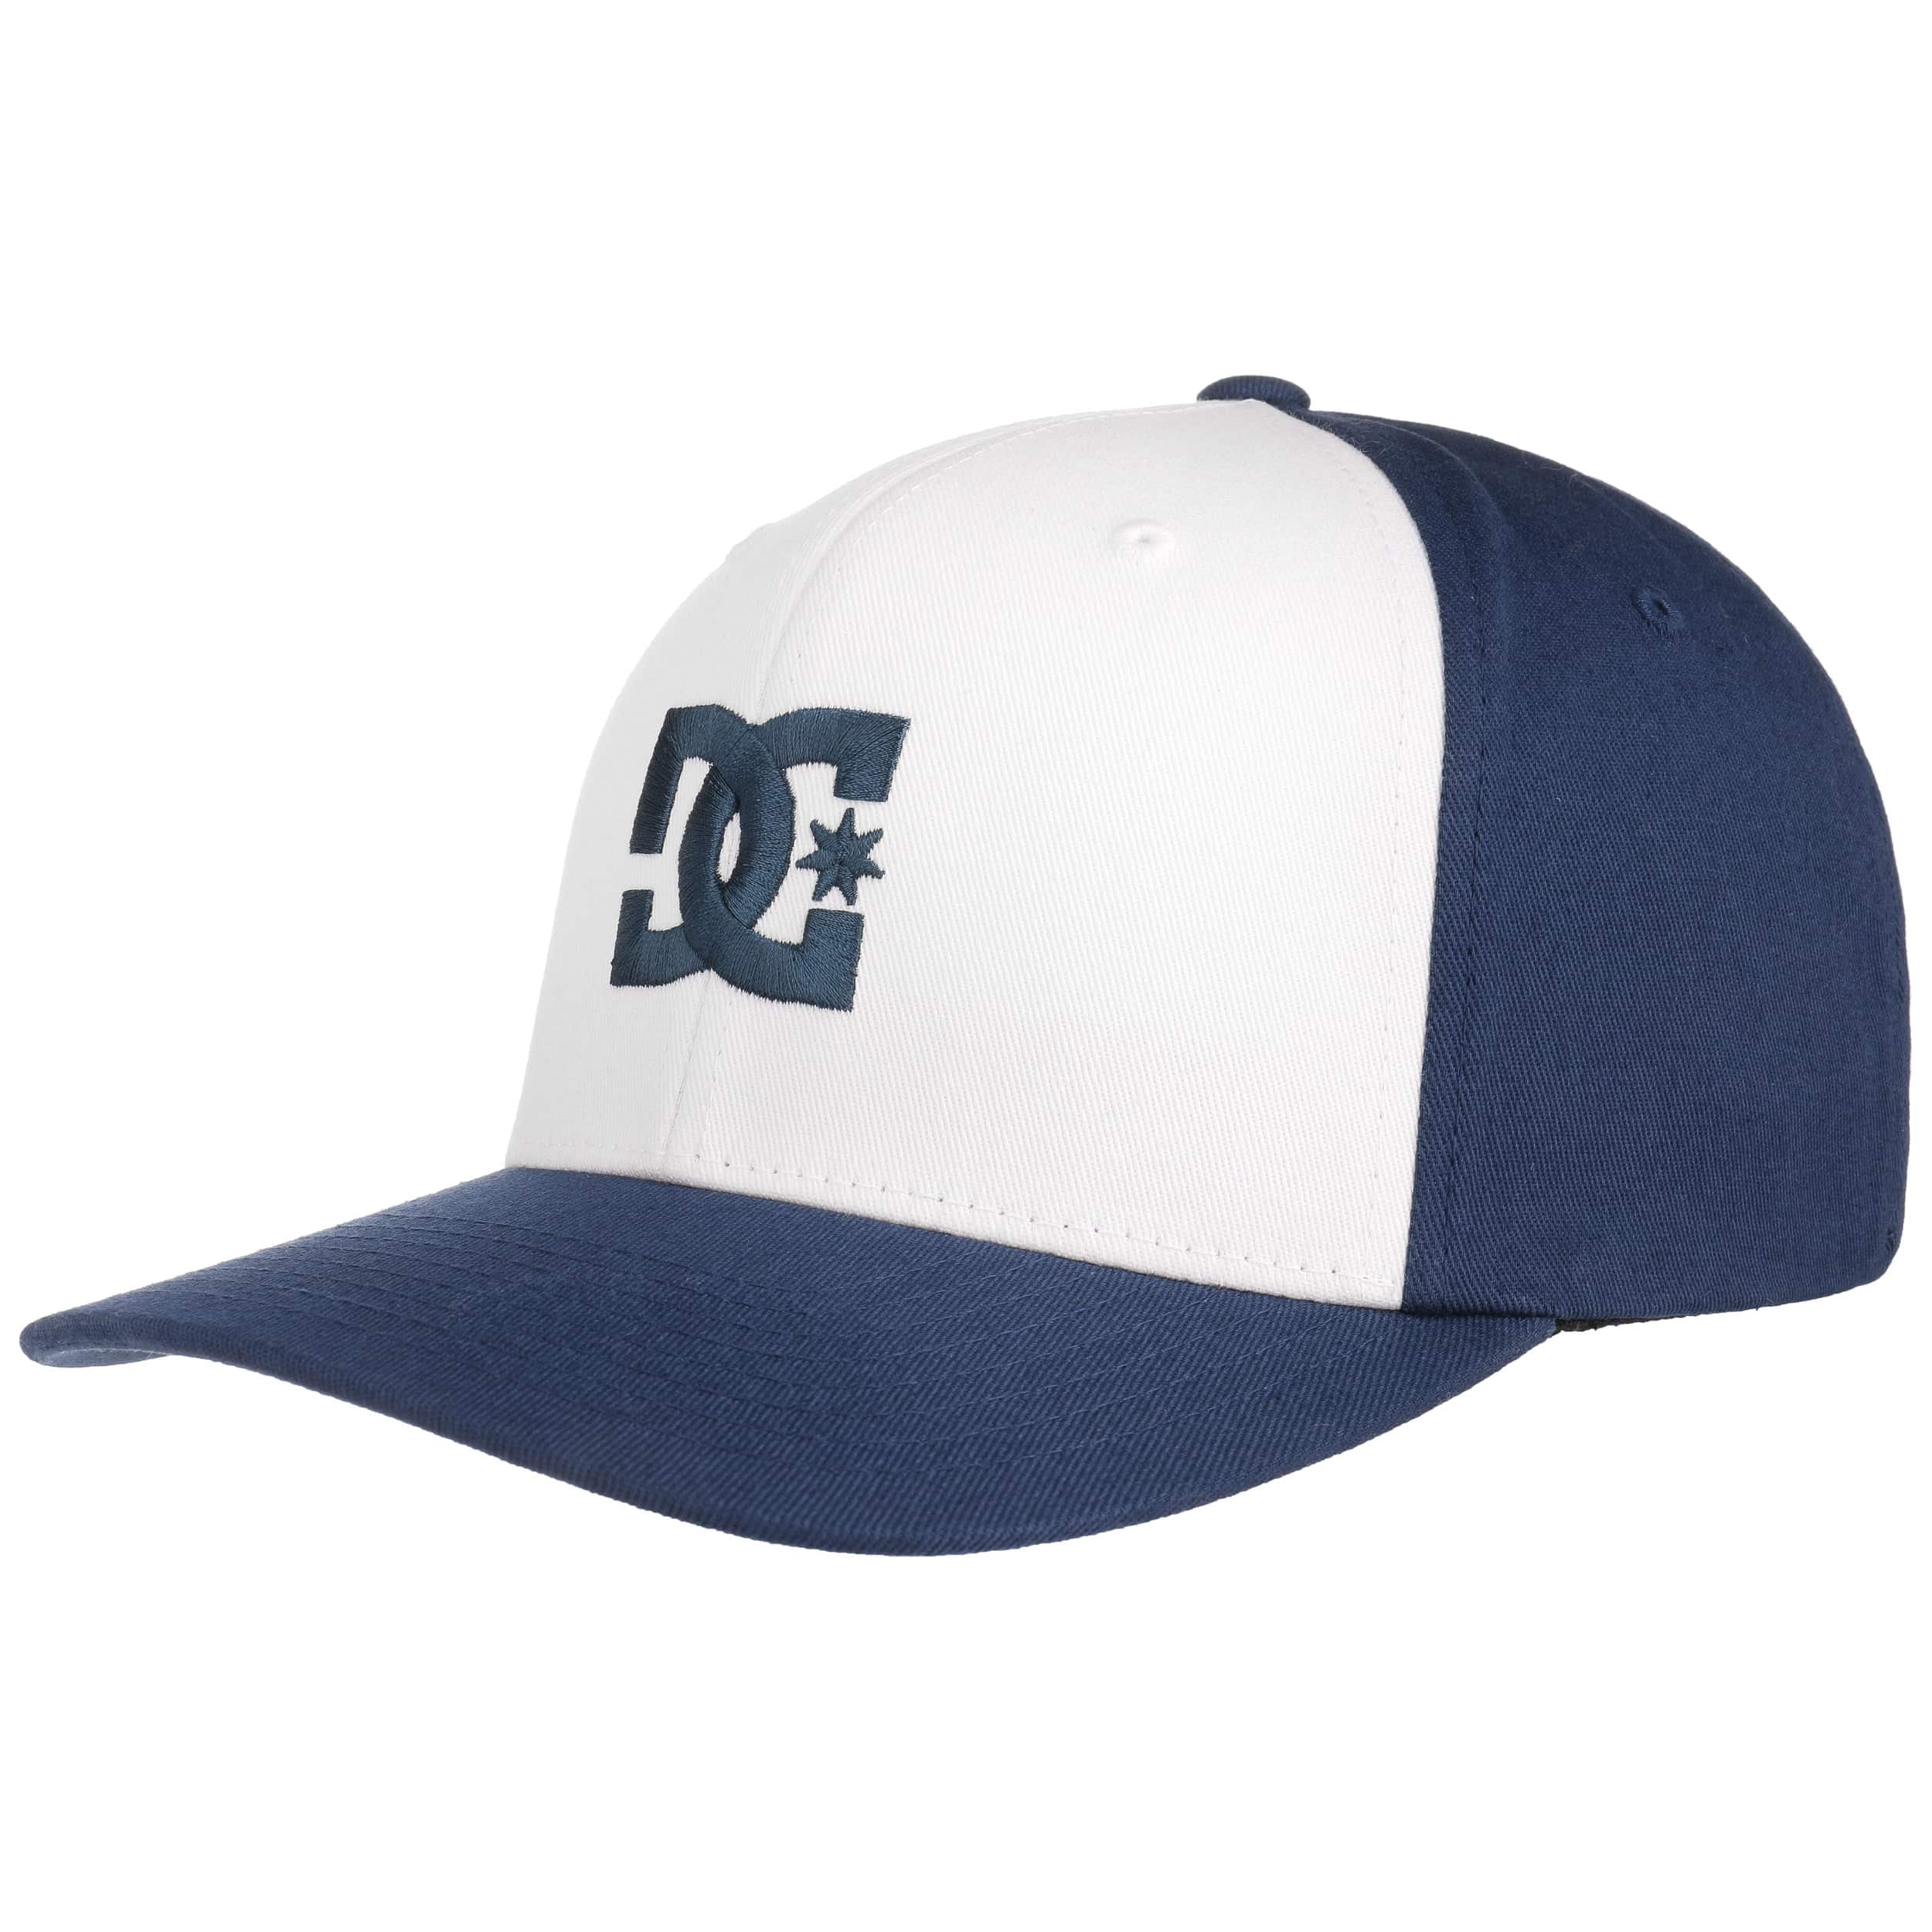 934f2f23d559 ... Star 2 Flexfit Cap by DC Shoes Co - blue 5 ...